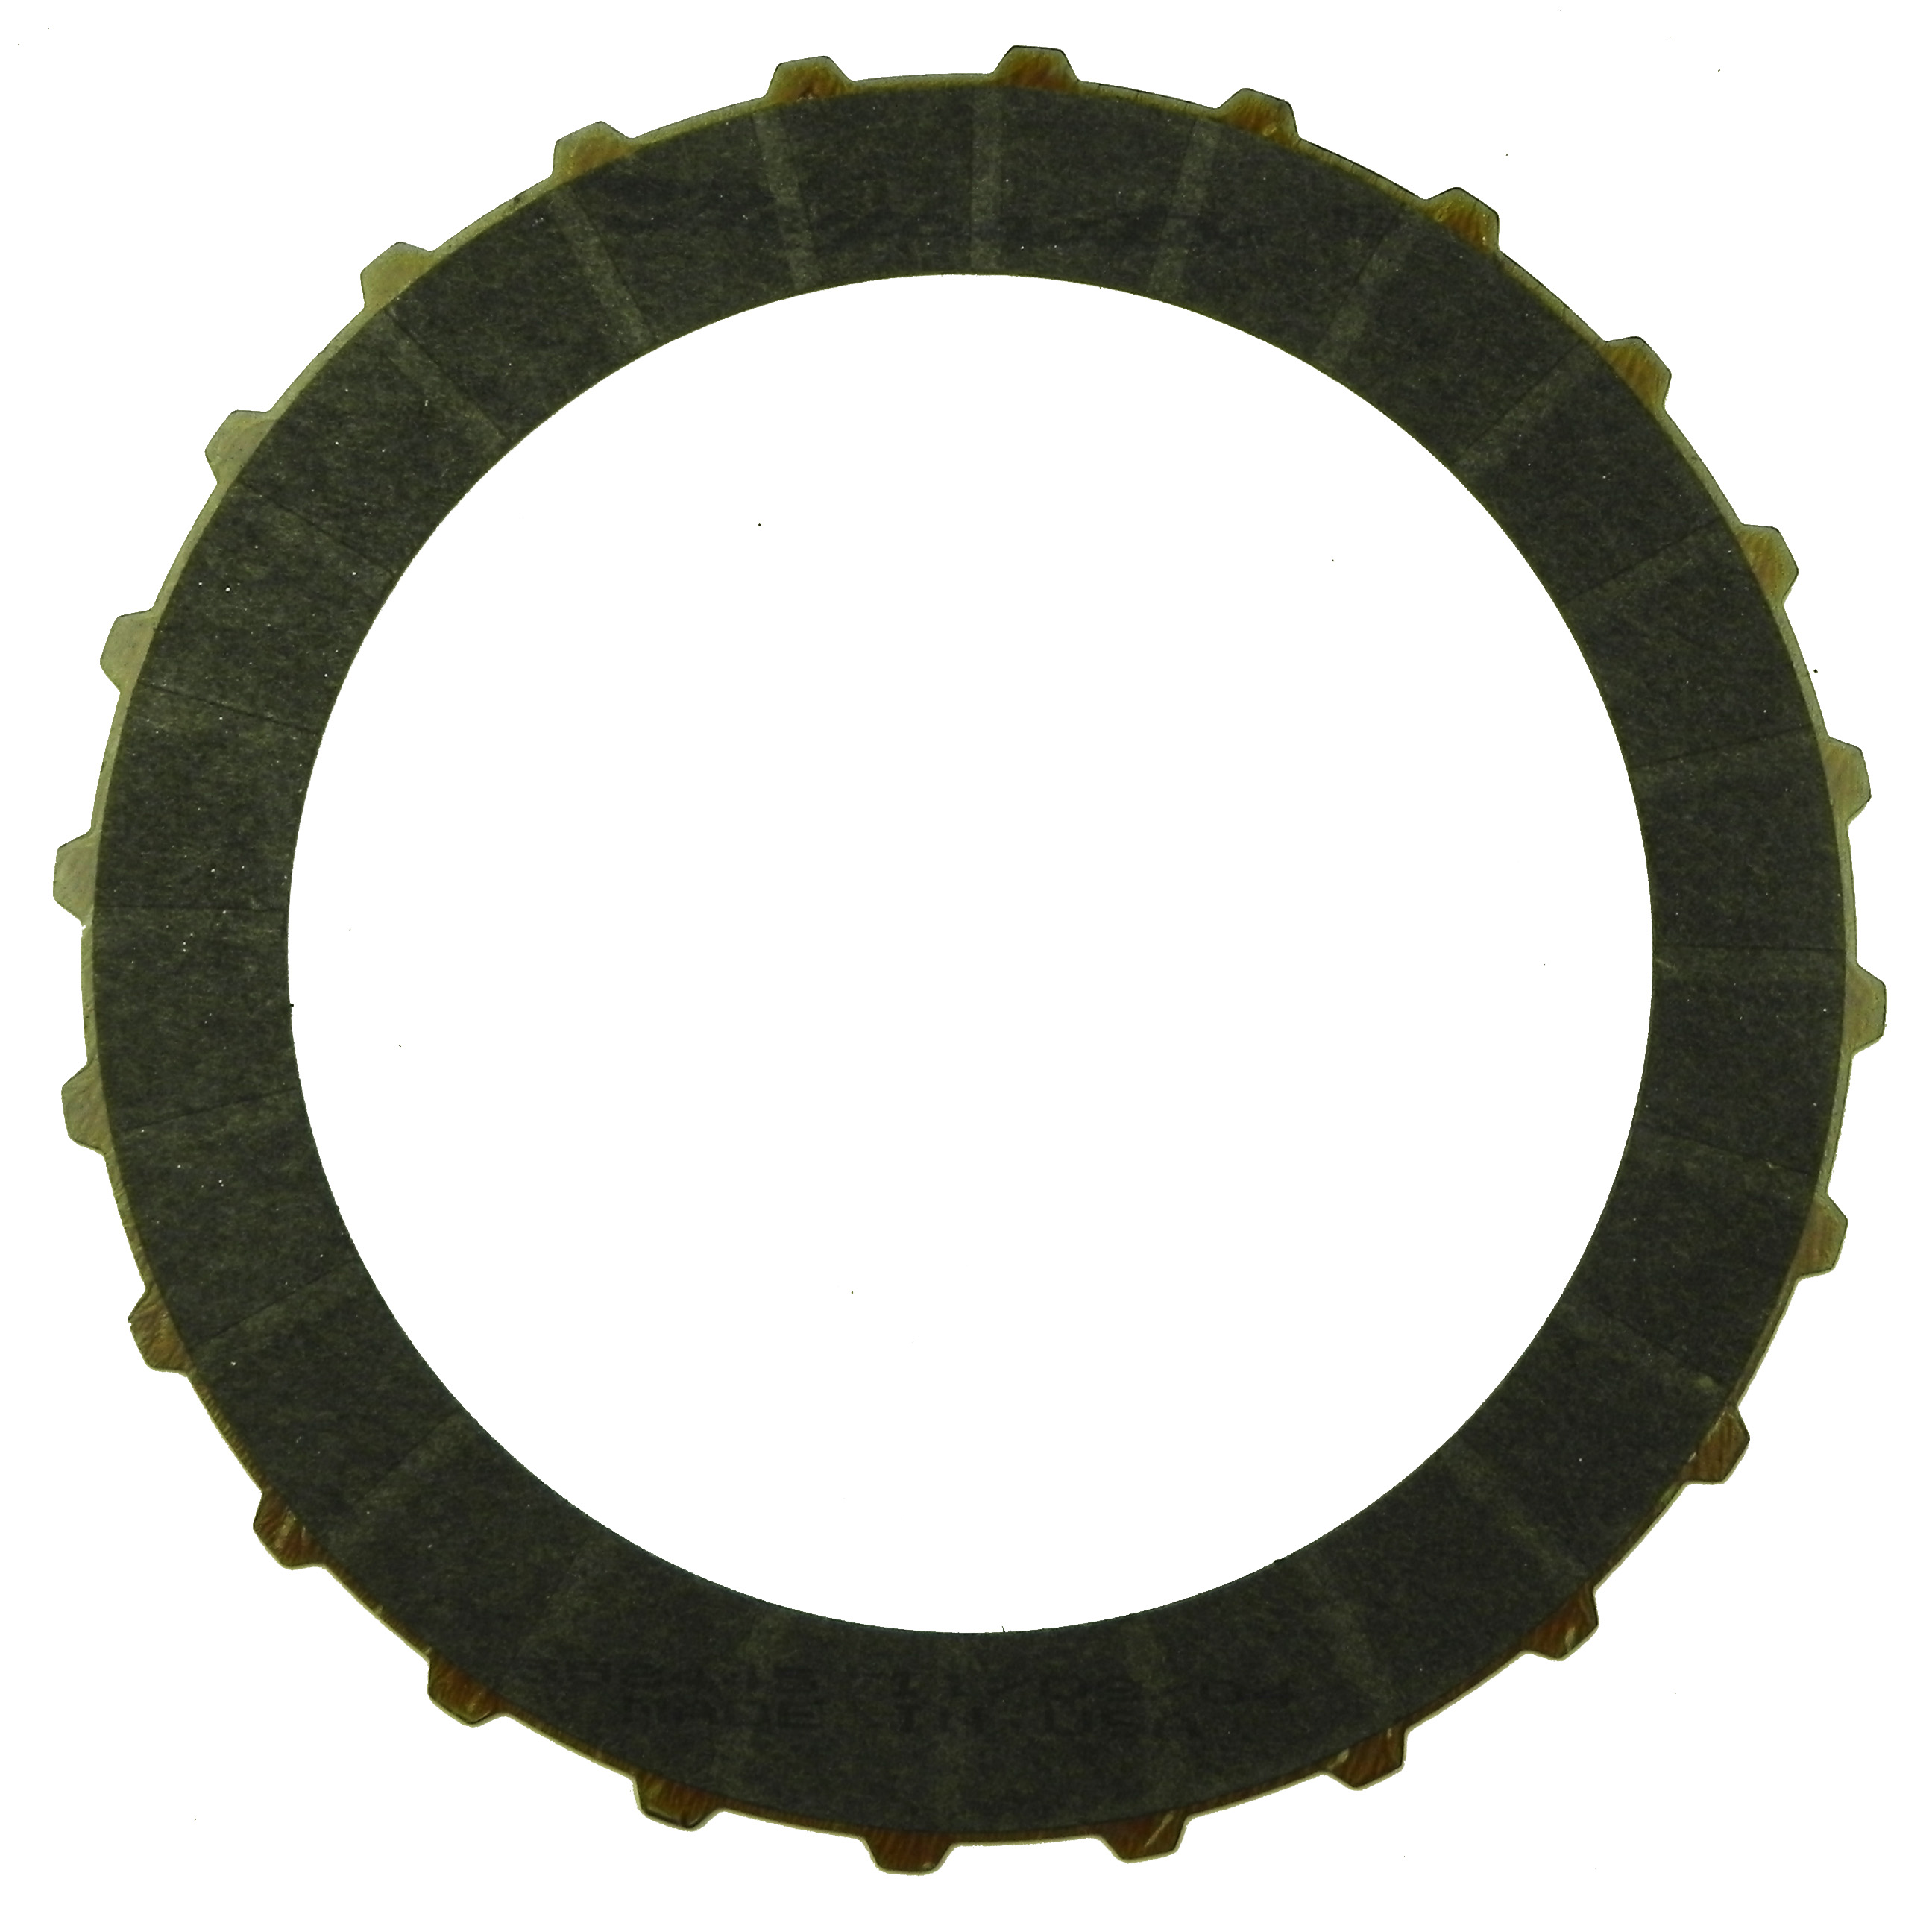 R558445 | 1999-ON Friction Clutch Plate High Energy Intermediate, Single Sided, OD Spline High Energy